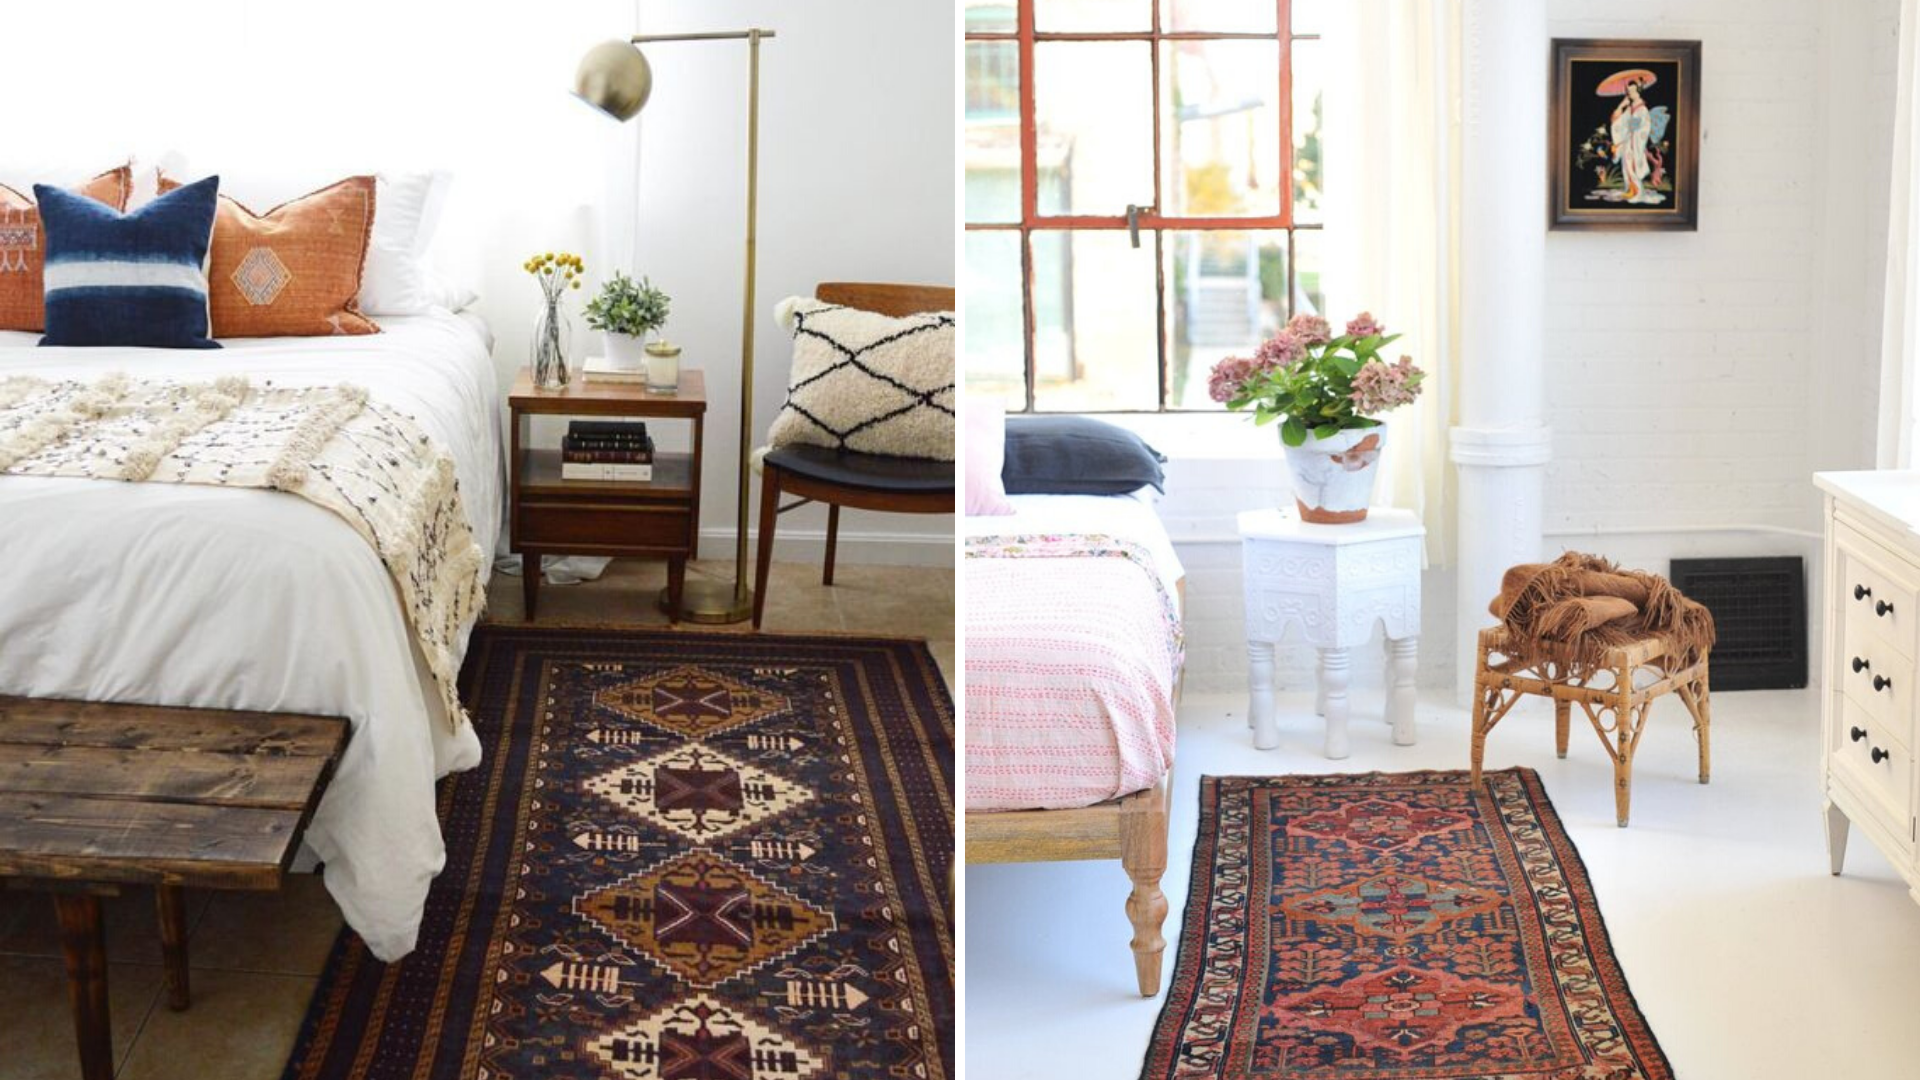 persian rugs, oriental rugs, persian rug runners, runners, runner rugs, london rugs, uk rugs, rug collections, interior design, design ideas, rug placement, home accessories